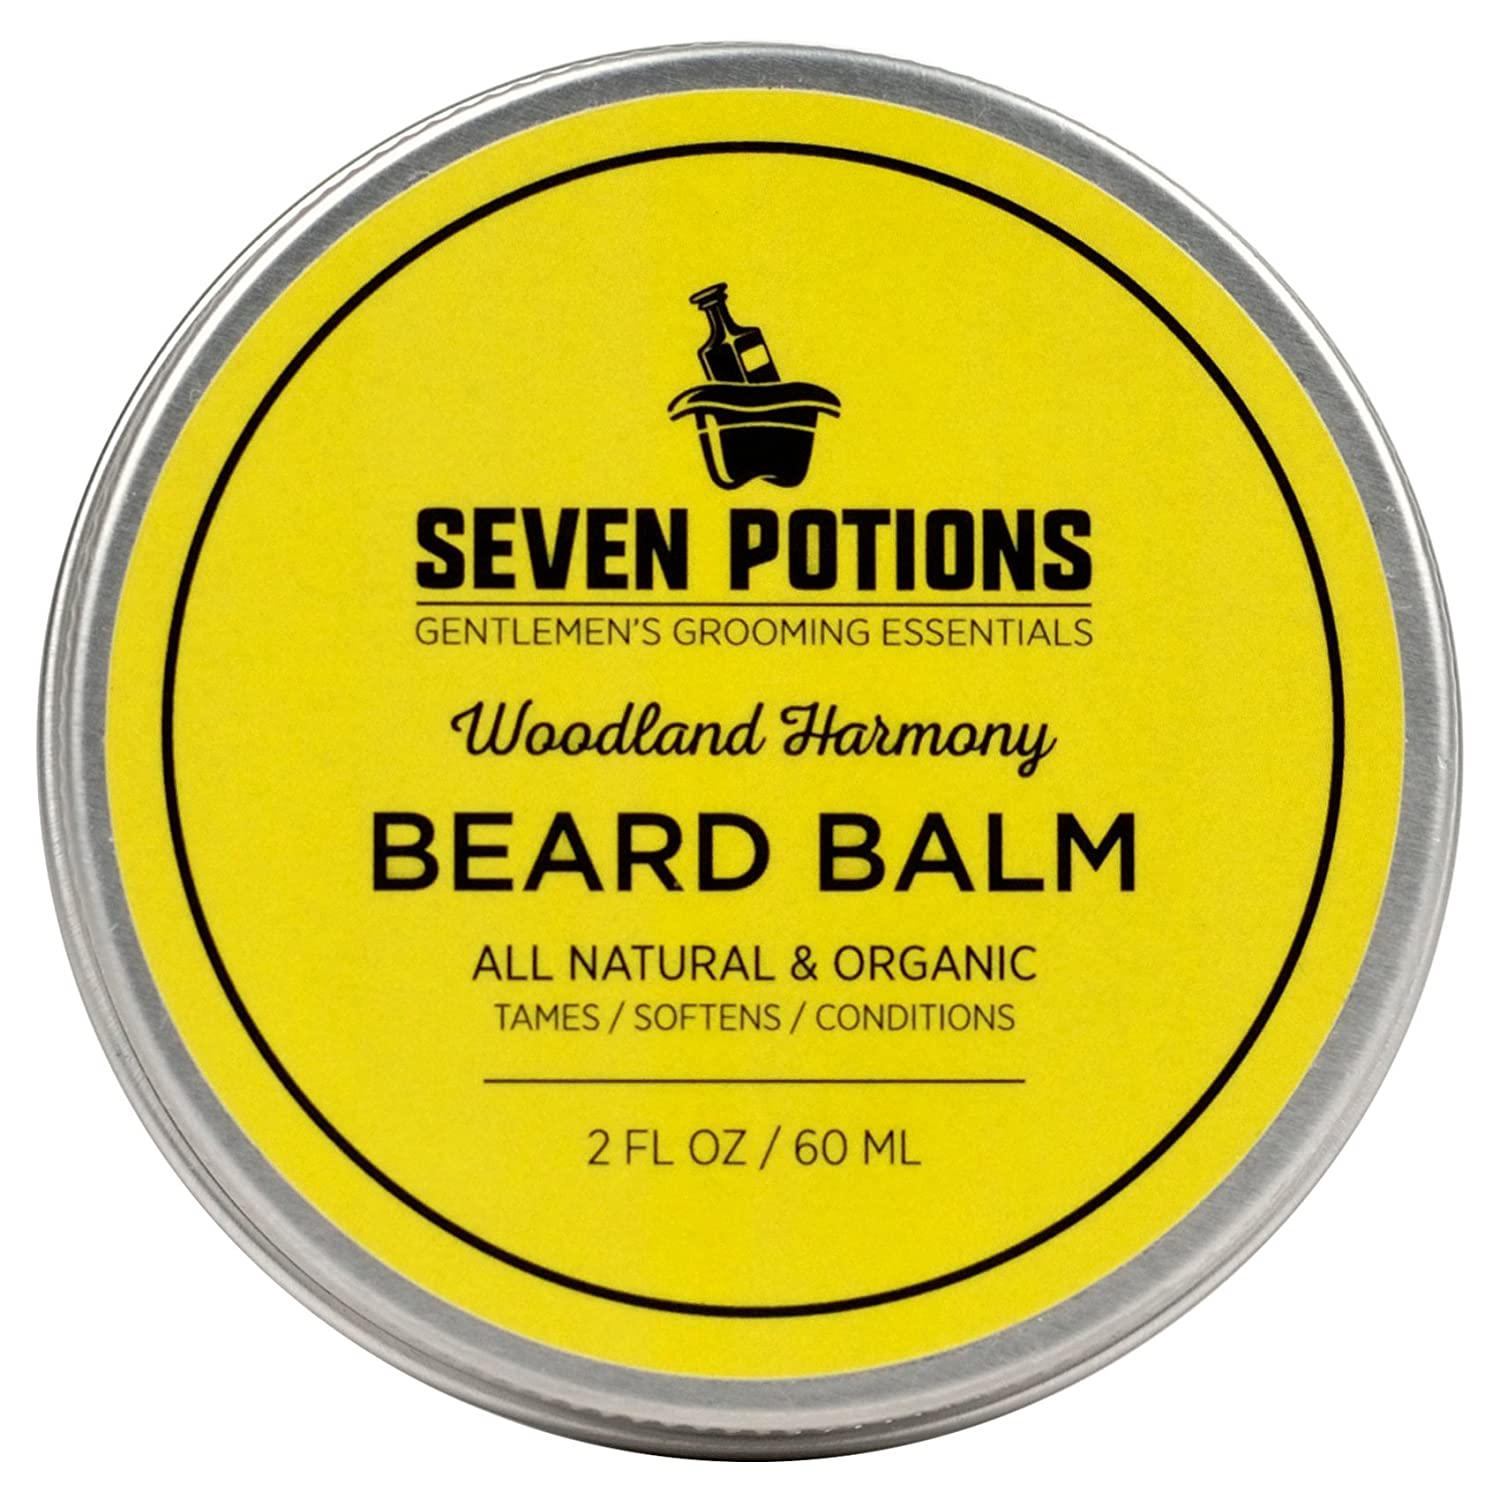 Seven Potions - Best Beard Balm & Leave-in Conditioner 56.6 g. Nourishes the Skin & Makes Your Beard Soft. 100% Natural, Organic with Jojoba Oil. Stops Beard Itch, Leaves it Naturally Shiny & Healthy (Woodland Harmony) by Seven Potions SP0005BB